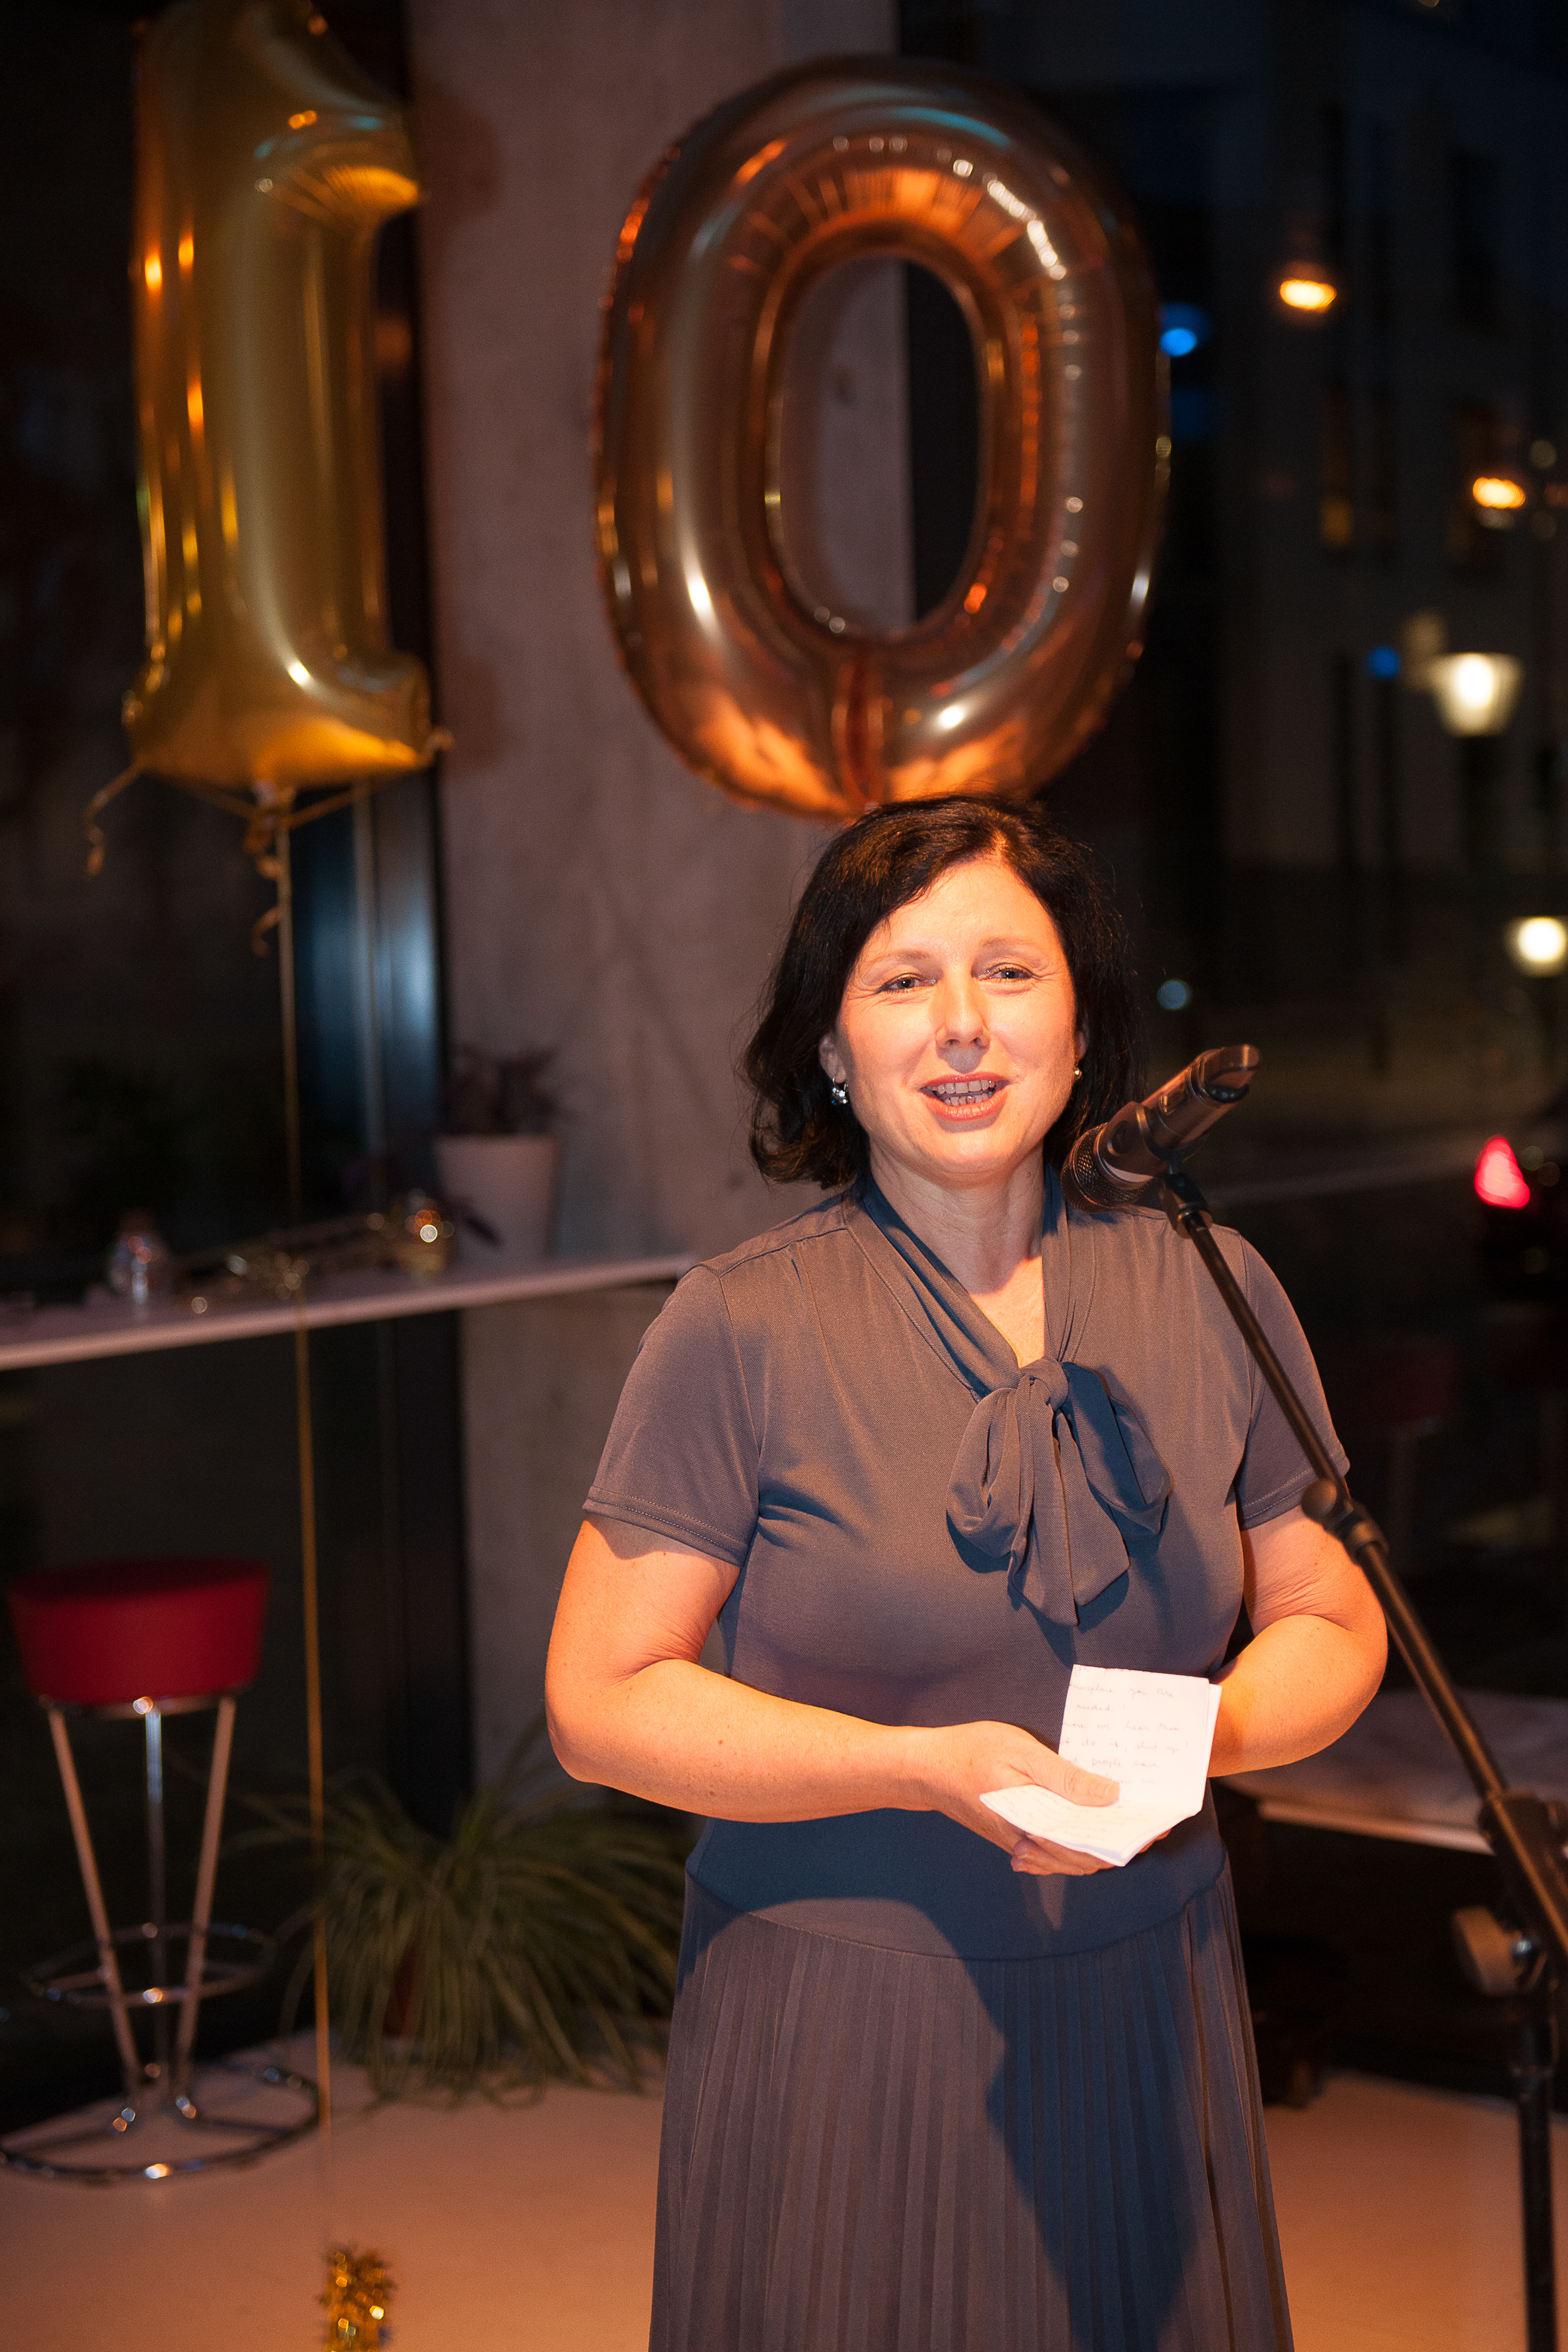 Commissioner Jourová addressing participants at Equinet's 10th anniversary